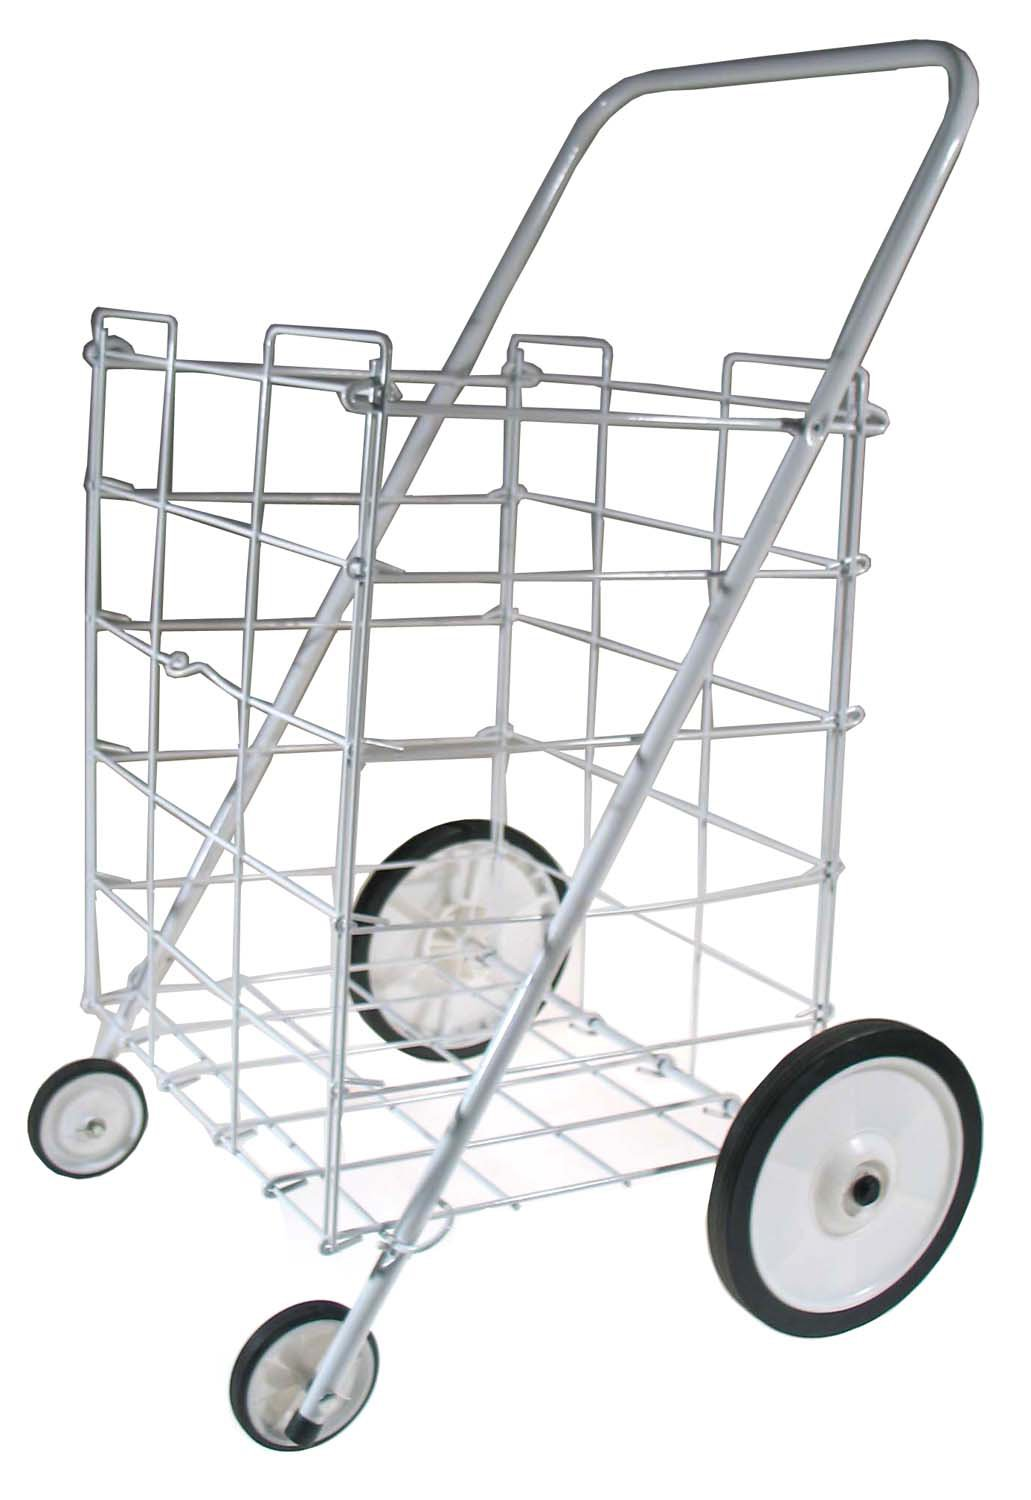 WHT Home Helpers 39480 Four-Wheel Folding Cart